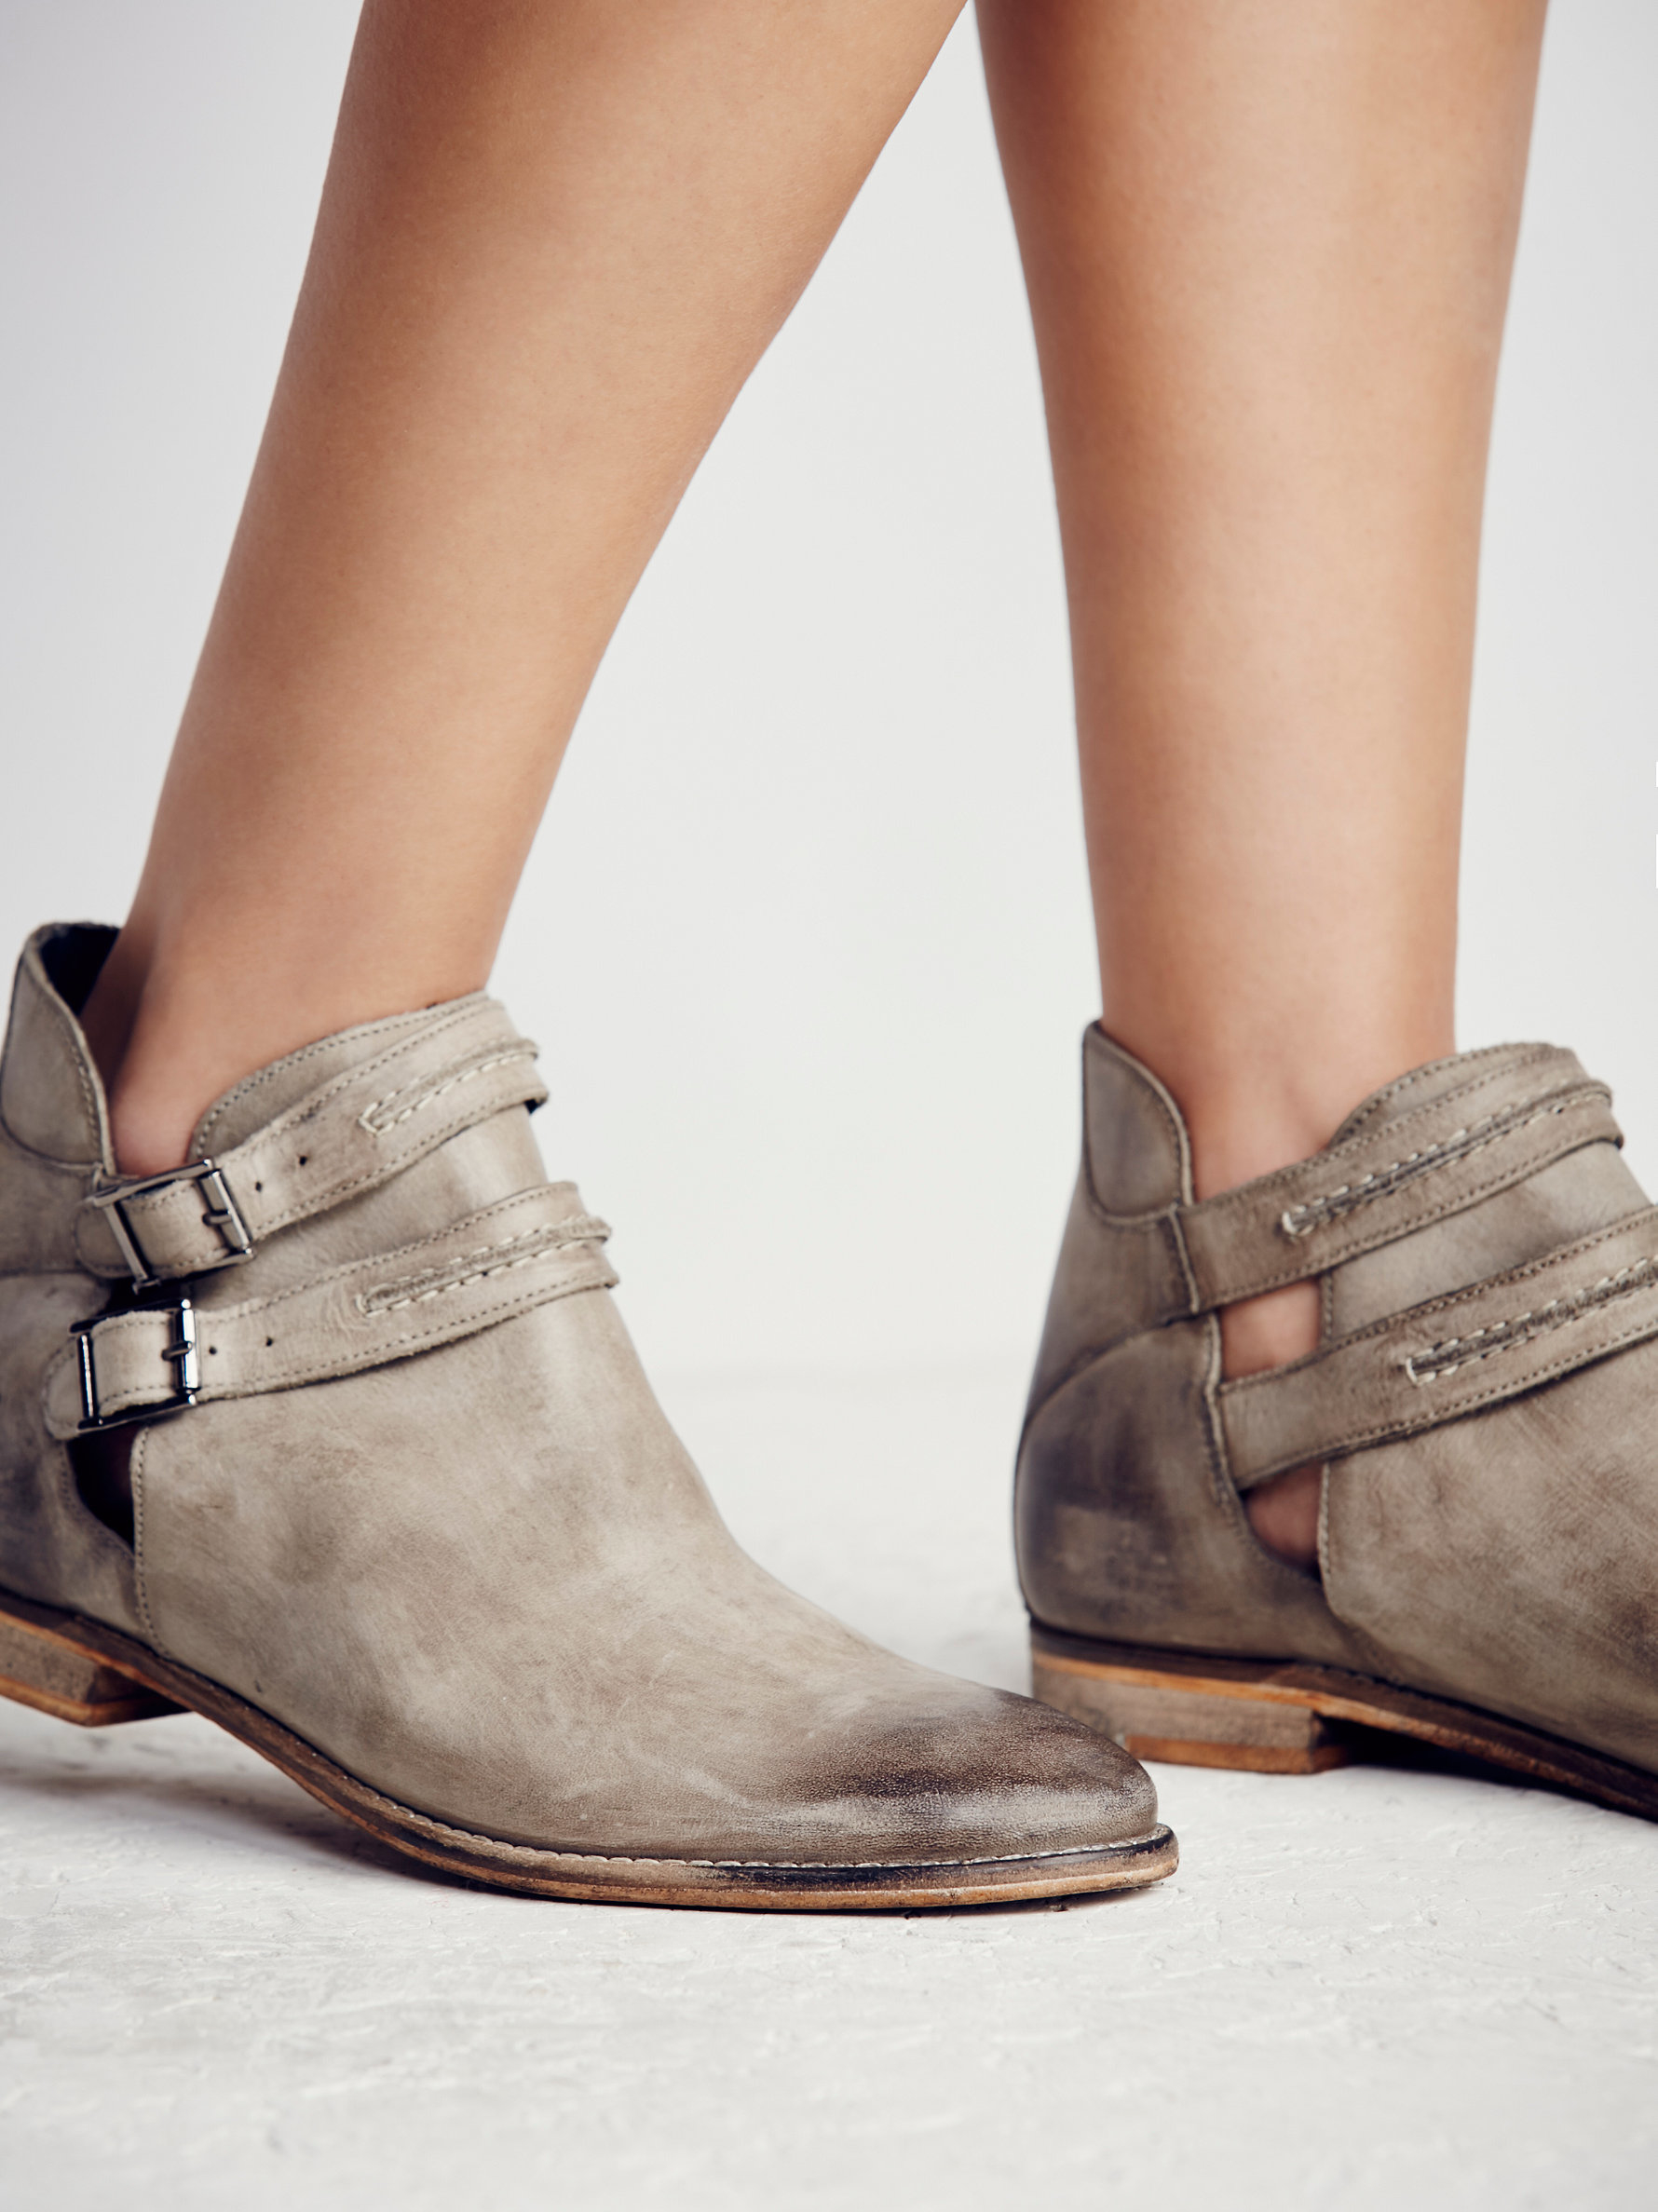 c8805d8dc301 Lyst - Free People Braeburn Ankle Boot in Gray